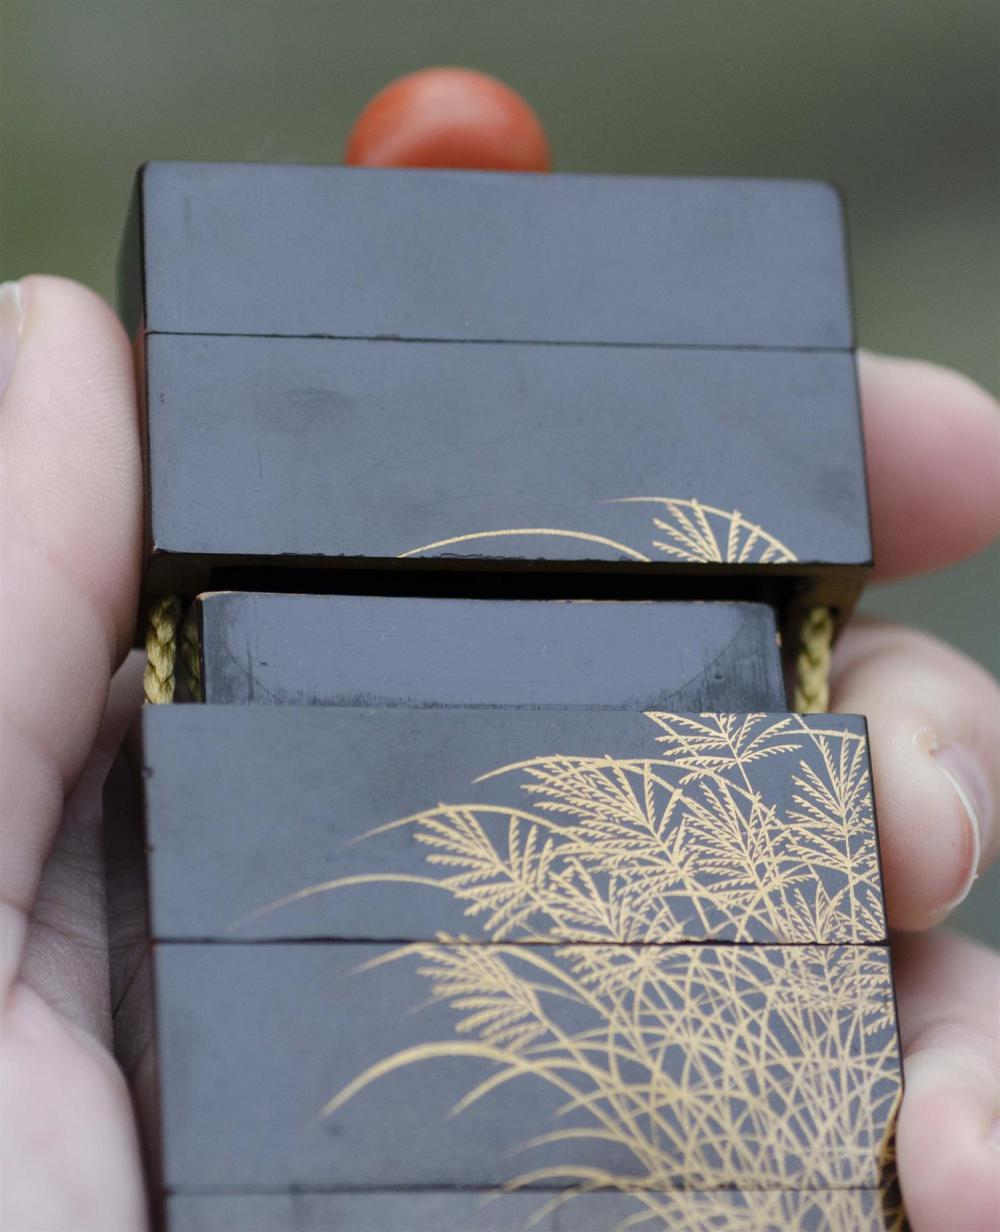 JAPANESE BLACK AND GOLD LACQUER FOUR-CASE INRO Rectangular, with grasses design. Signed. Length 3.5